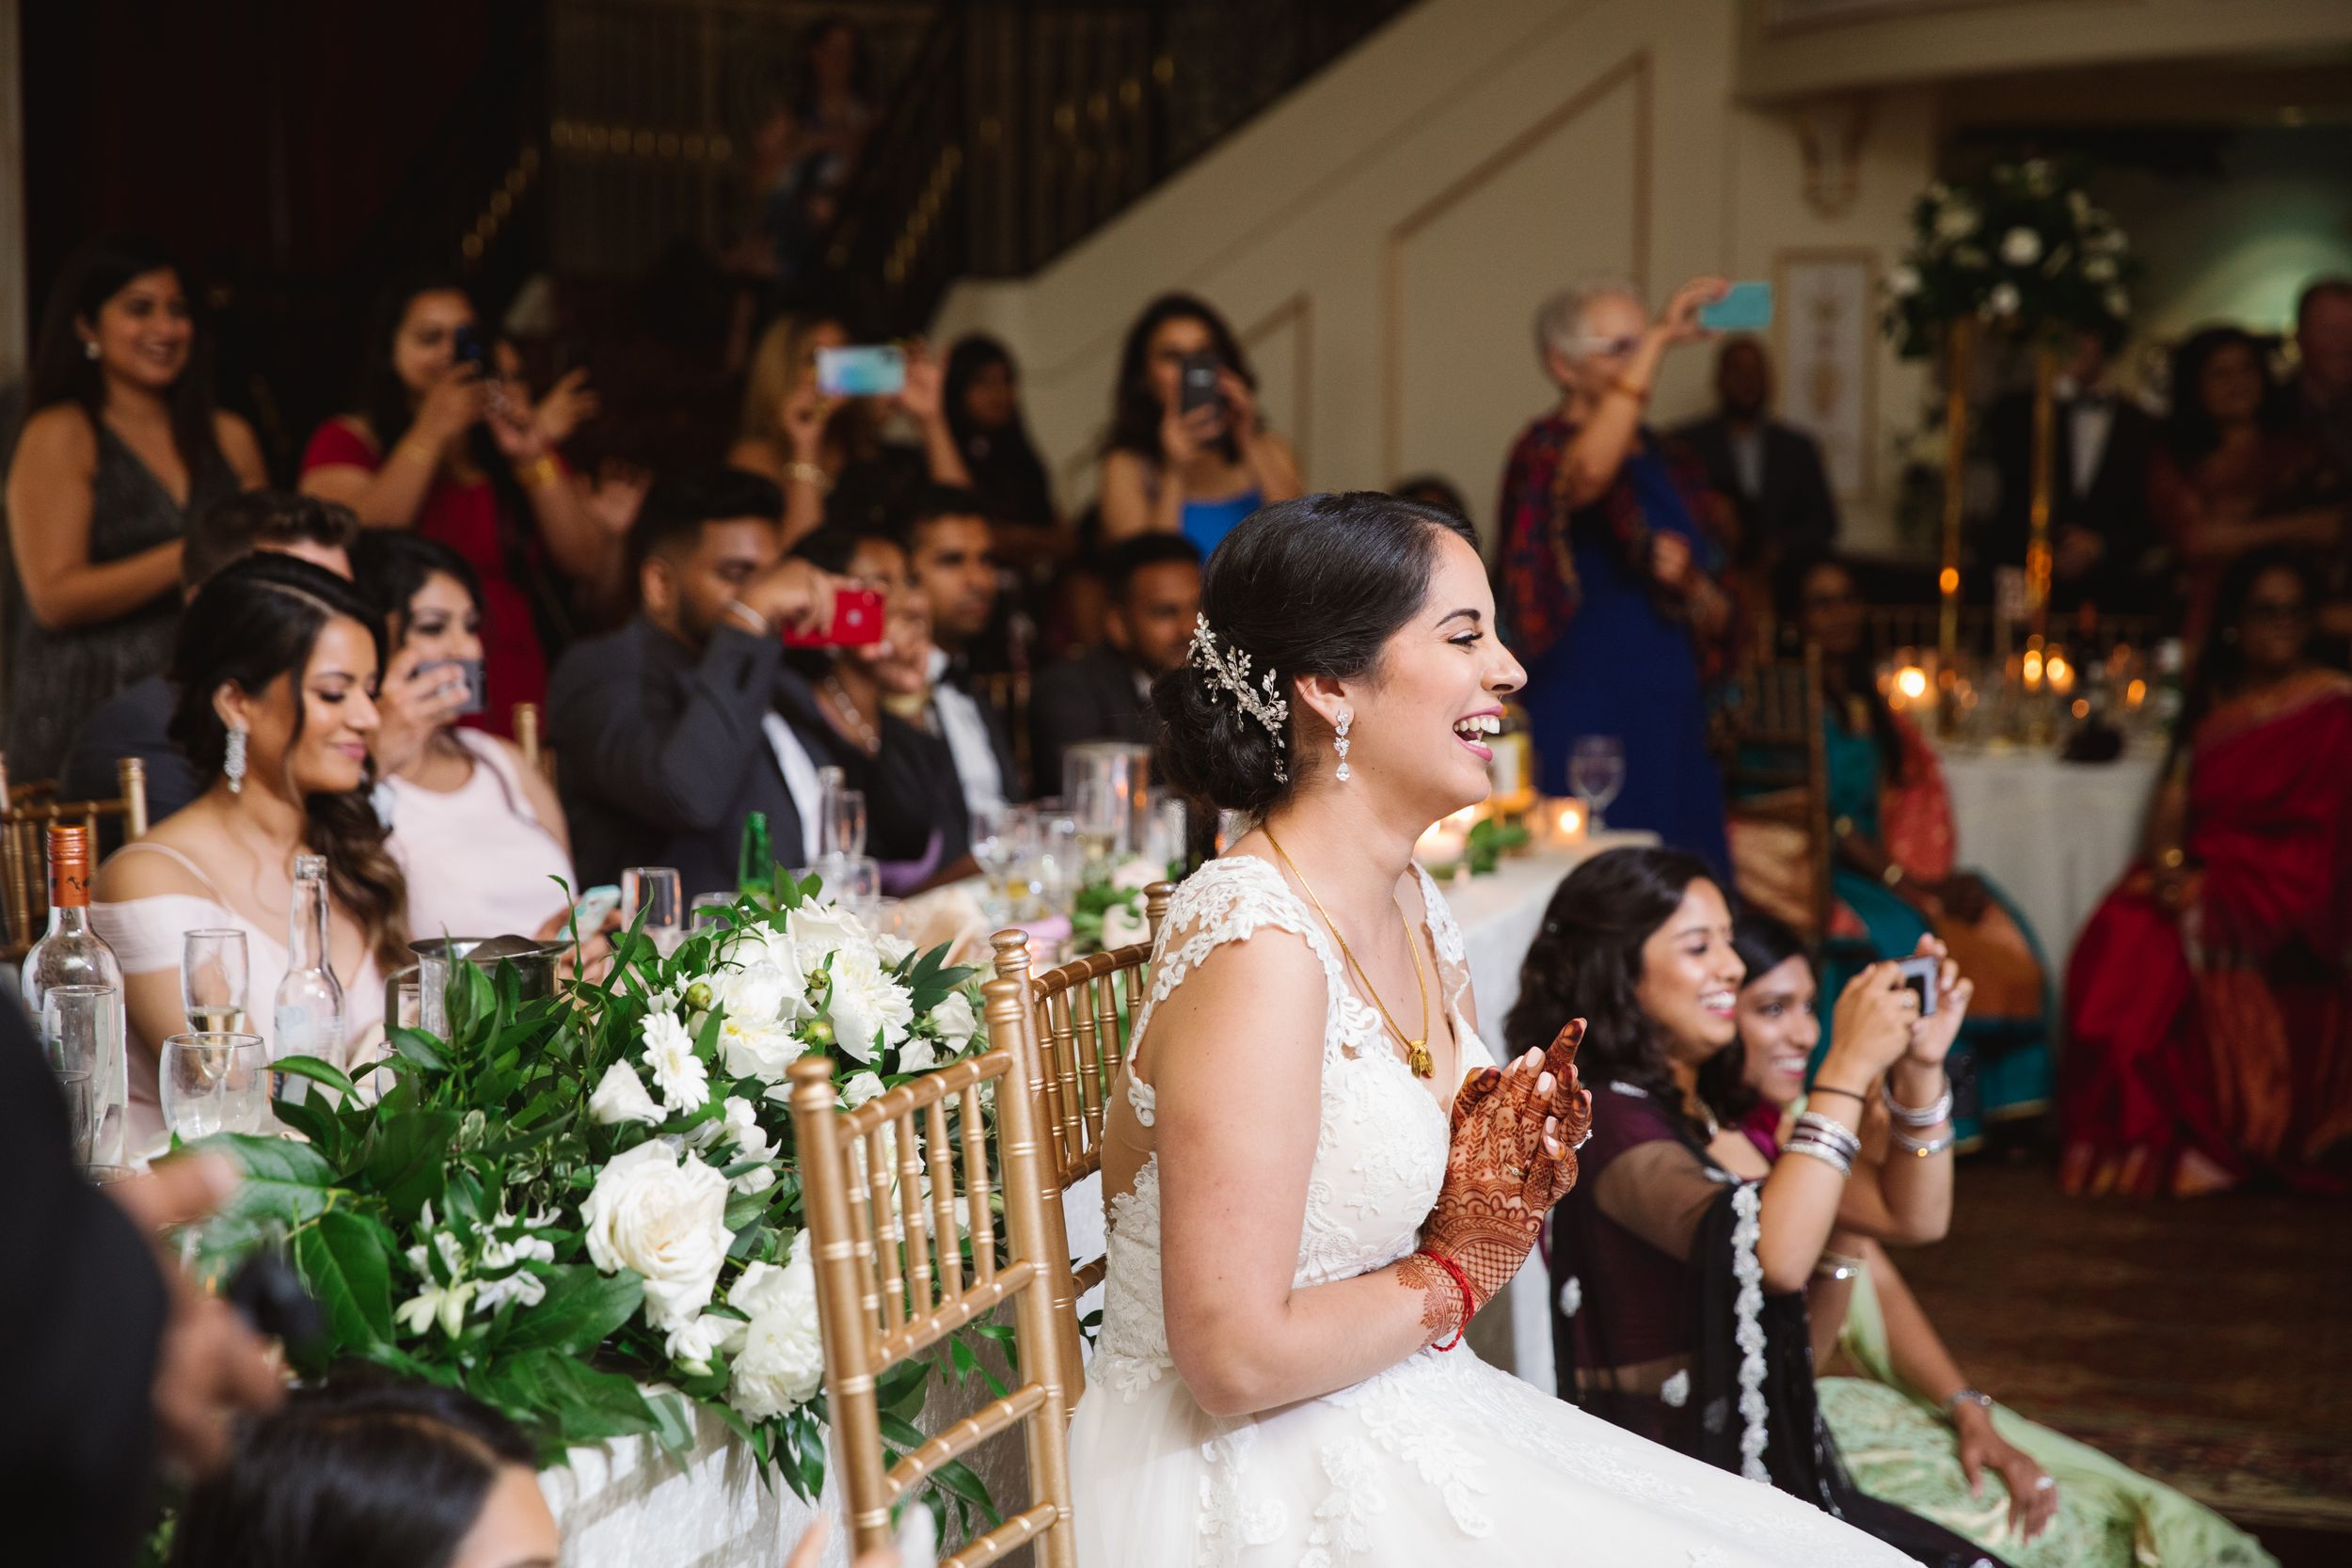 bride laughing and clapping on a chair with greenery behind